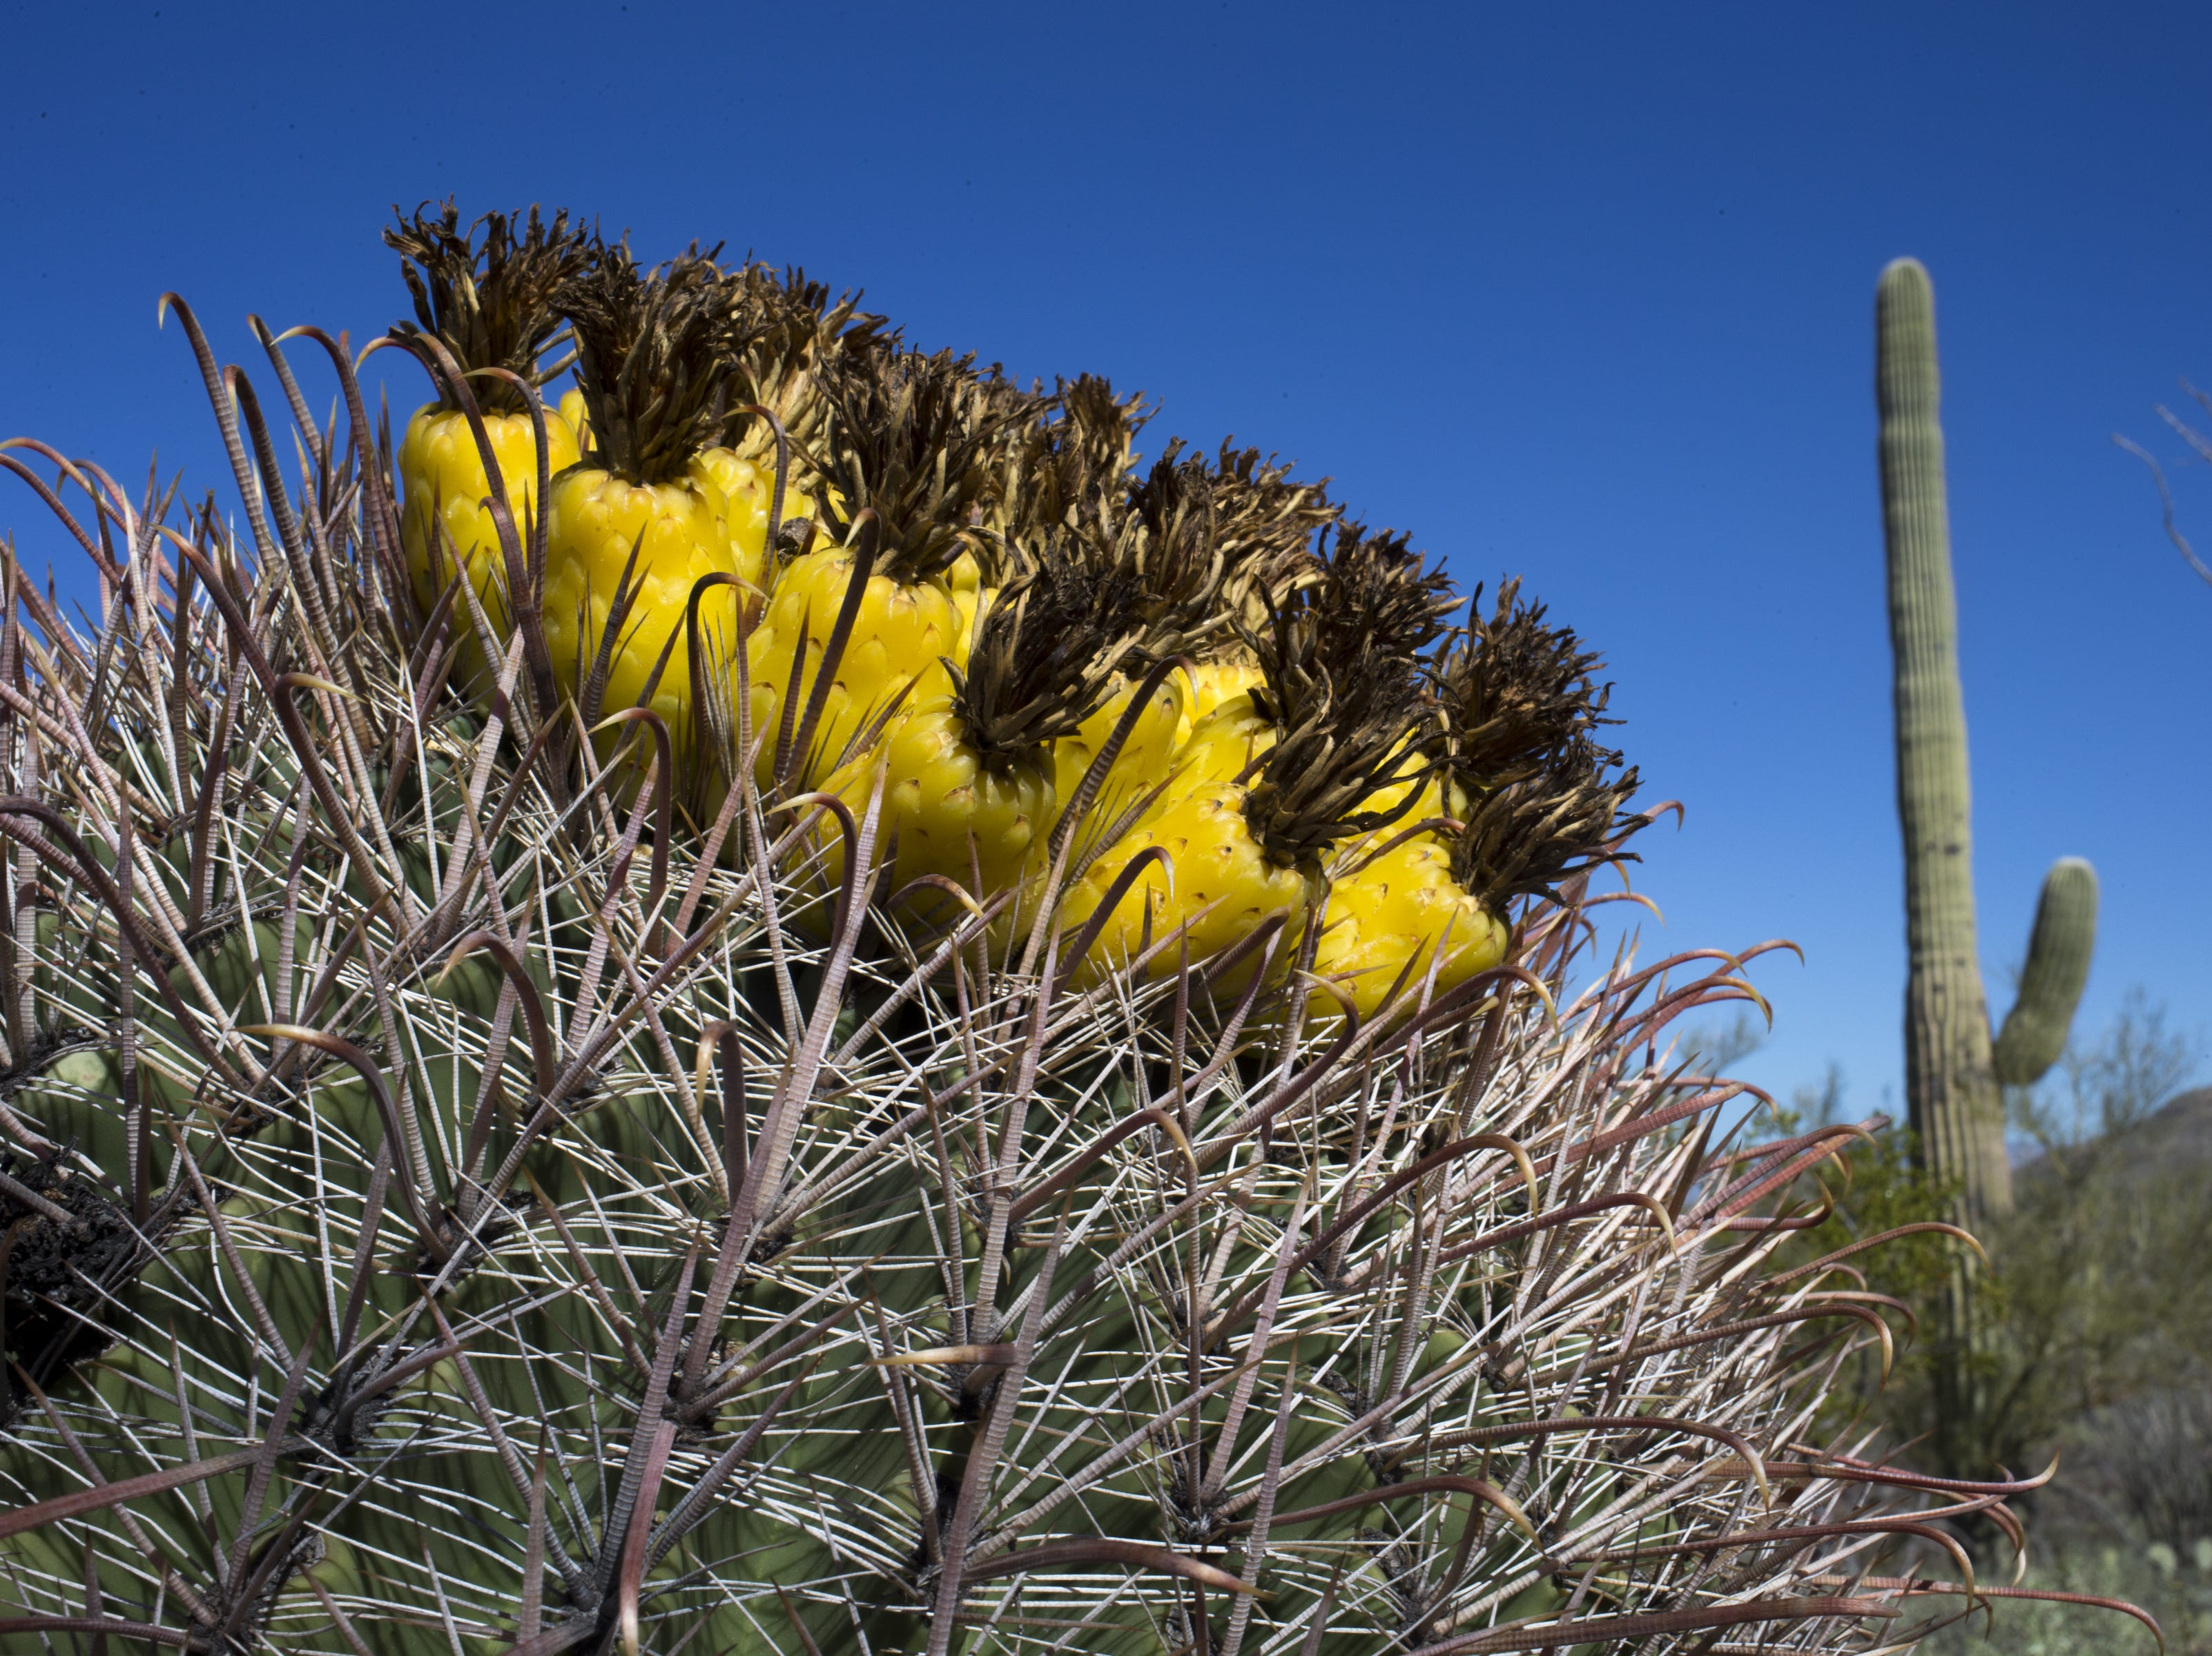 A cactus barrel is seen on the Wren Trail near Tucson.